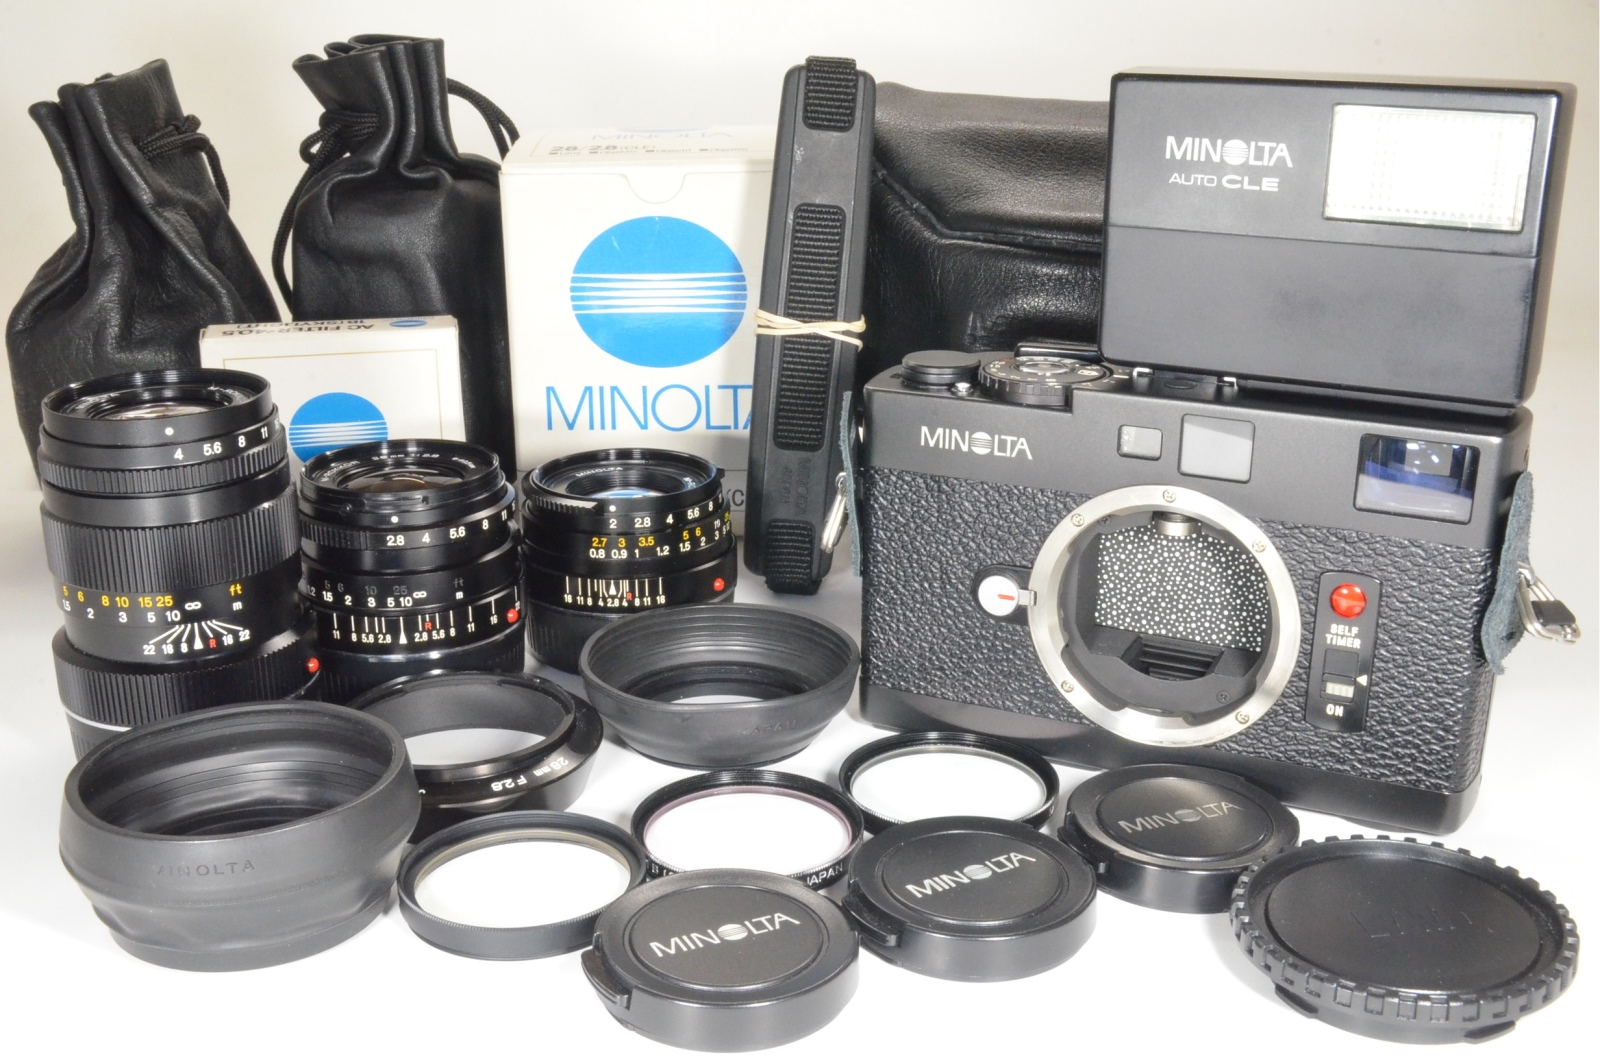 minolta cle film camera w/ m-rokkor 40mm, 28mm, 90mm and flash, film tested